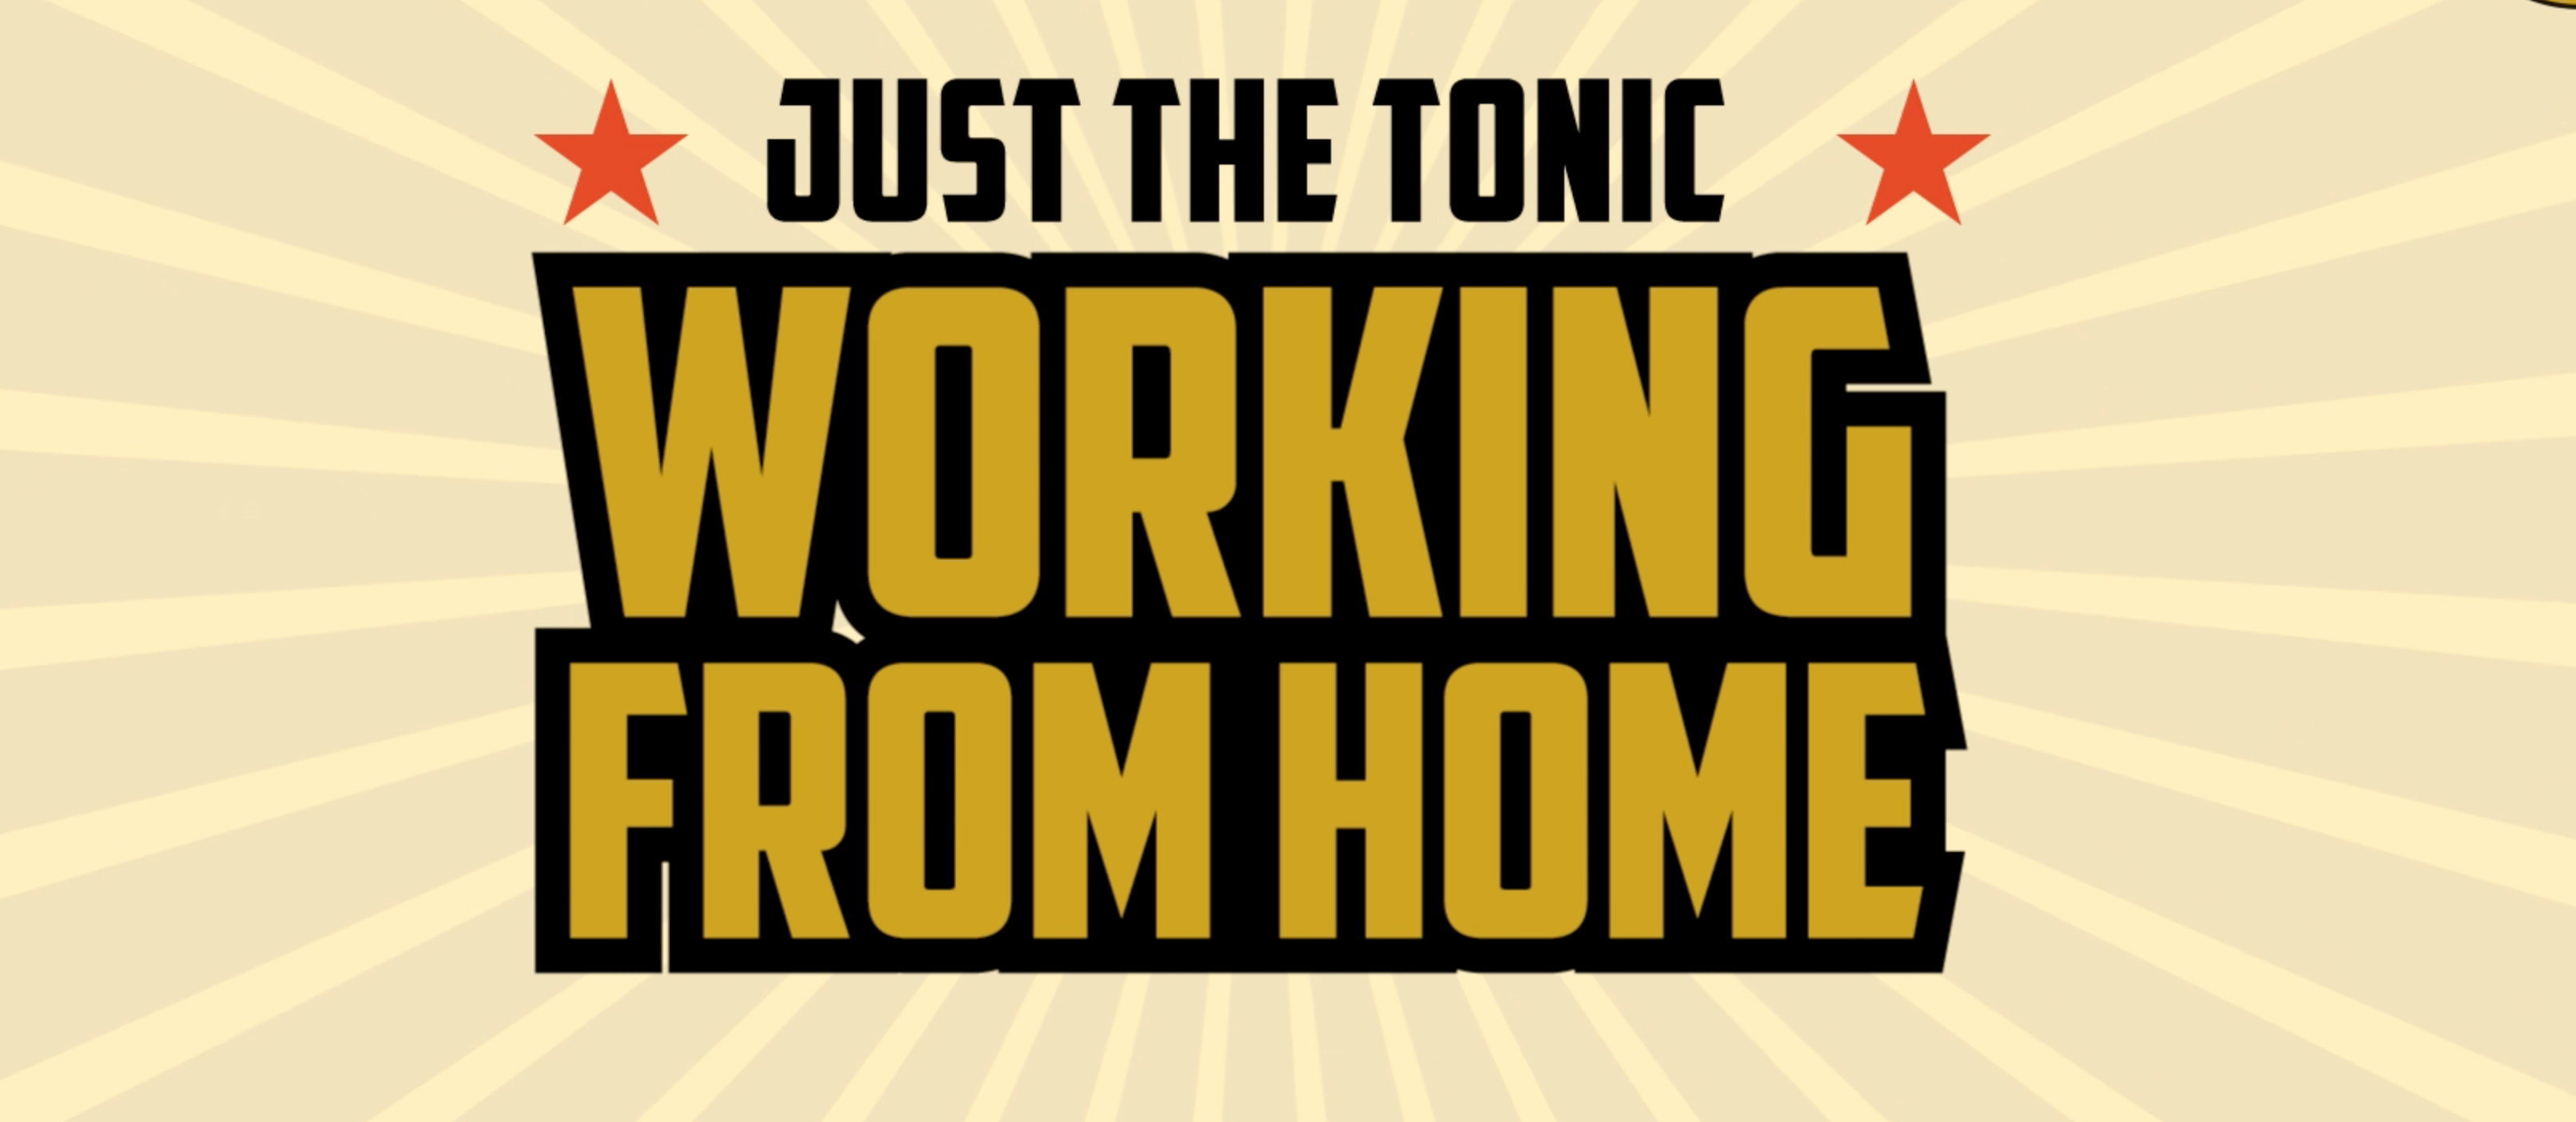 Just the Tonic Comedy Club - Working From Home - Edfringe Special